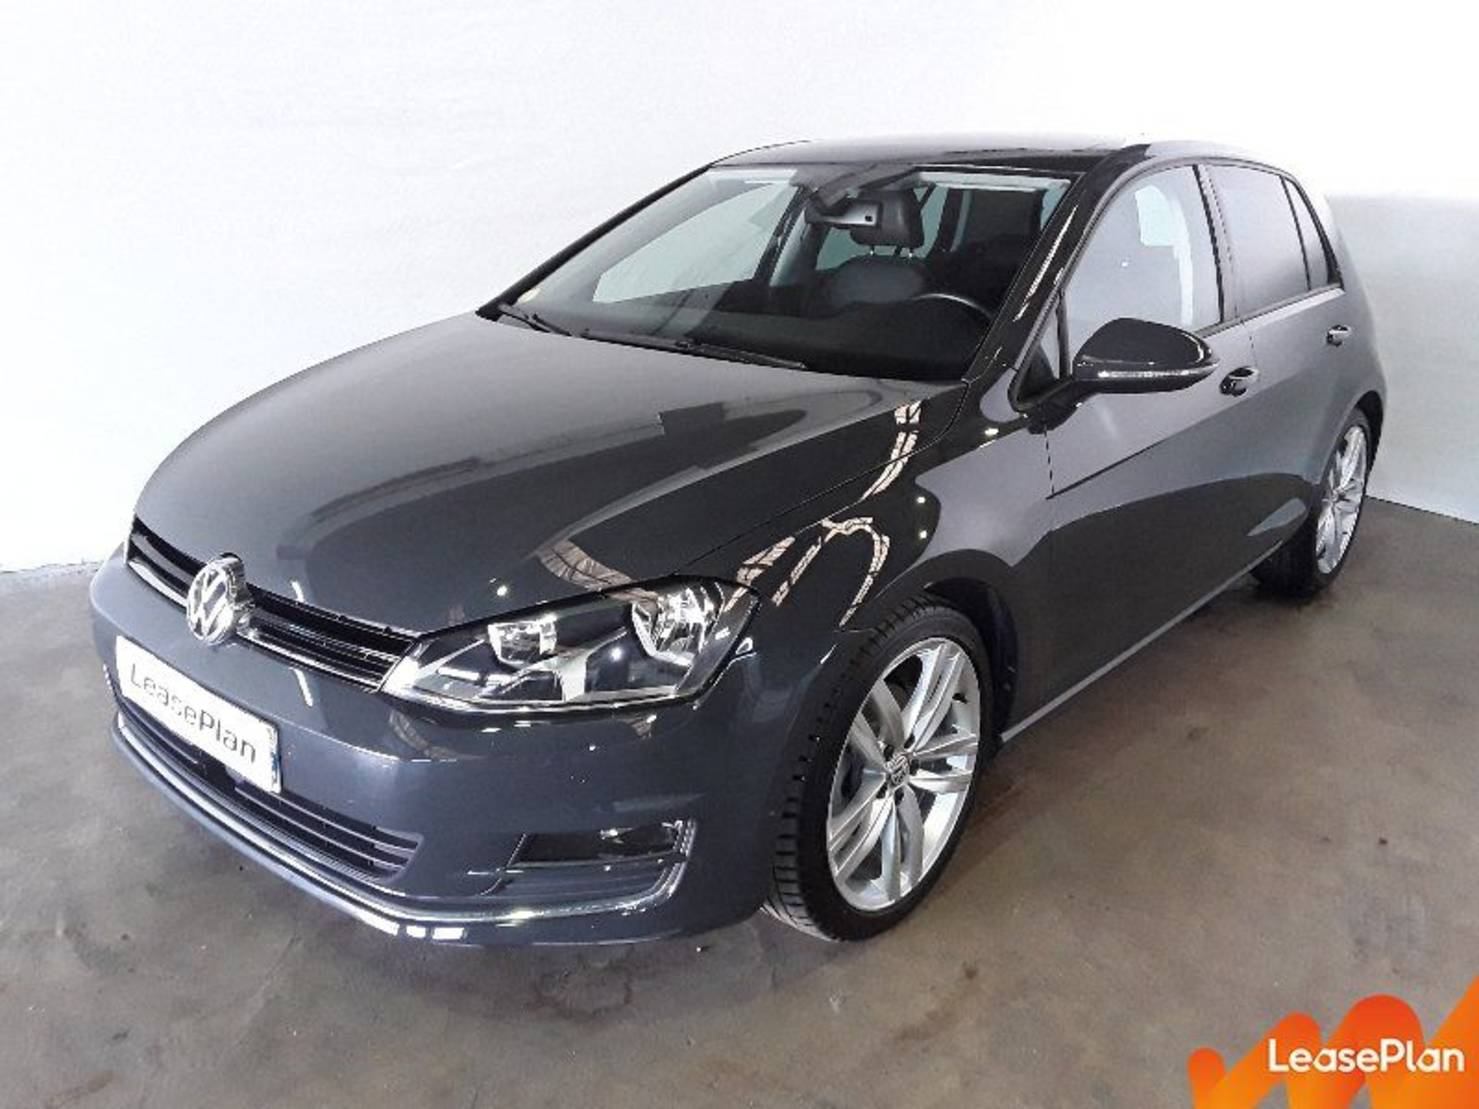 Volkswagen Golf 2.0 TDI 150 BlueMotion Technology FAP, Carat DSG6 detail1